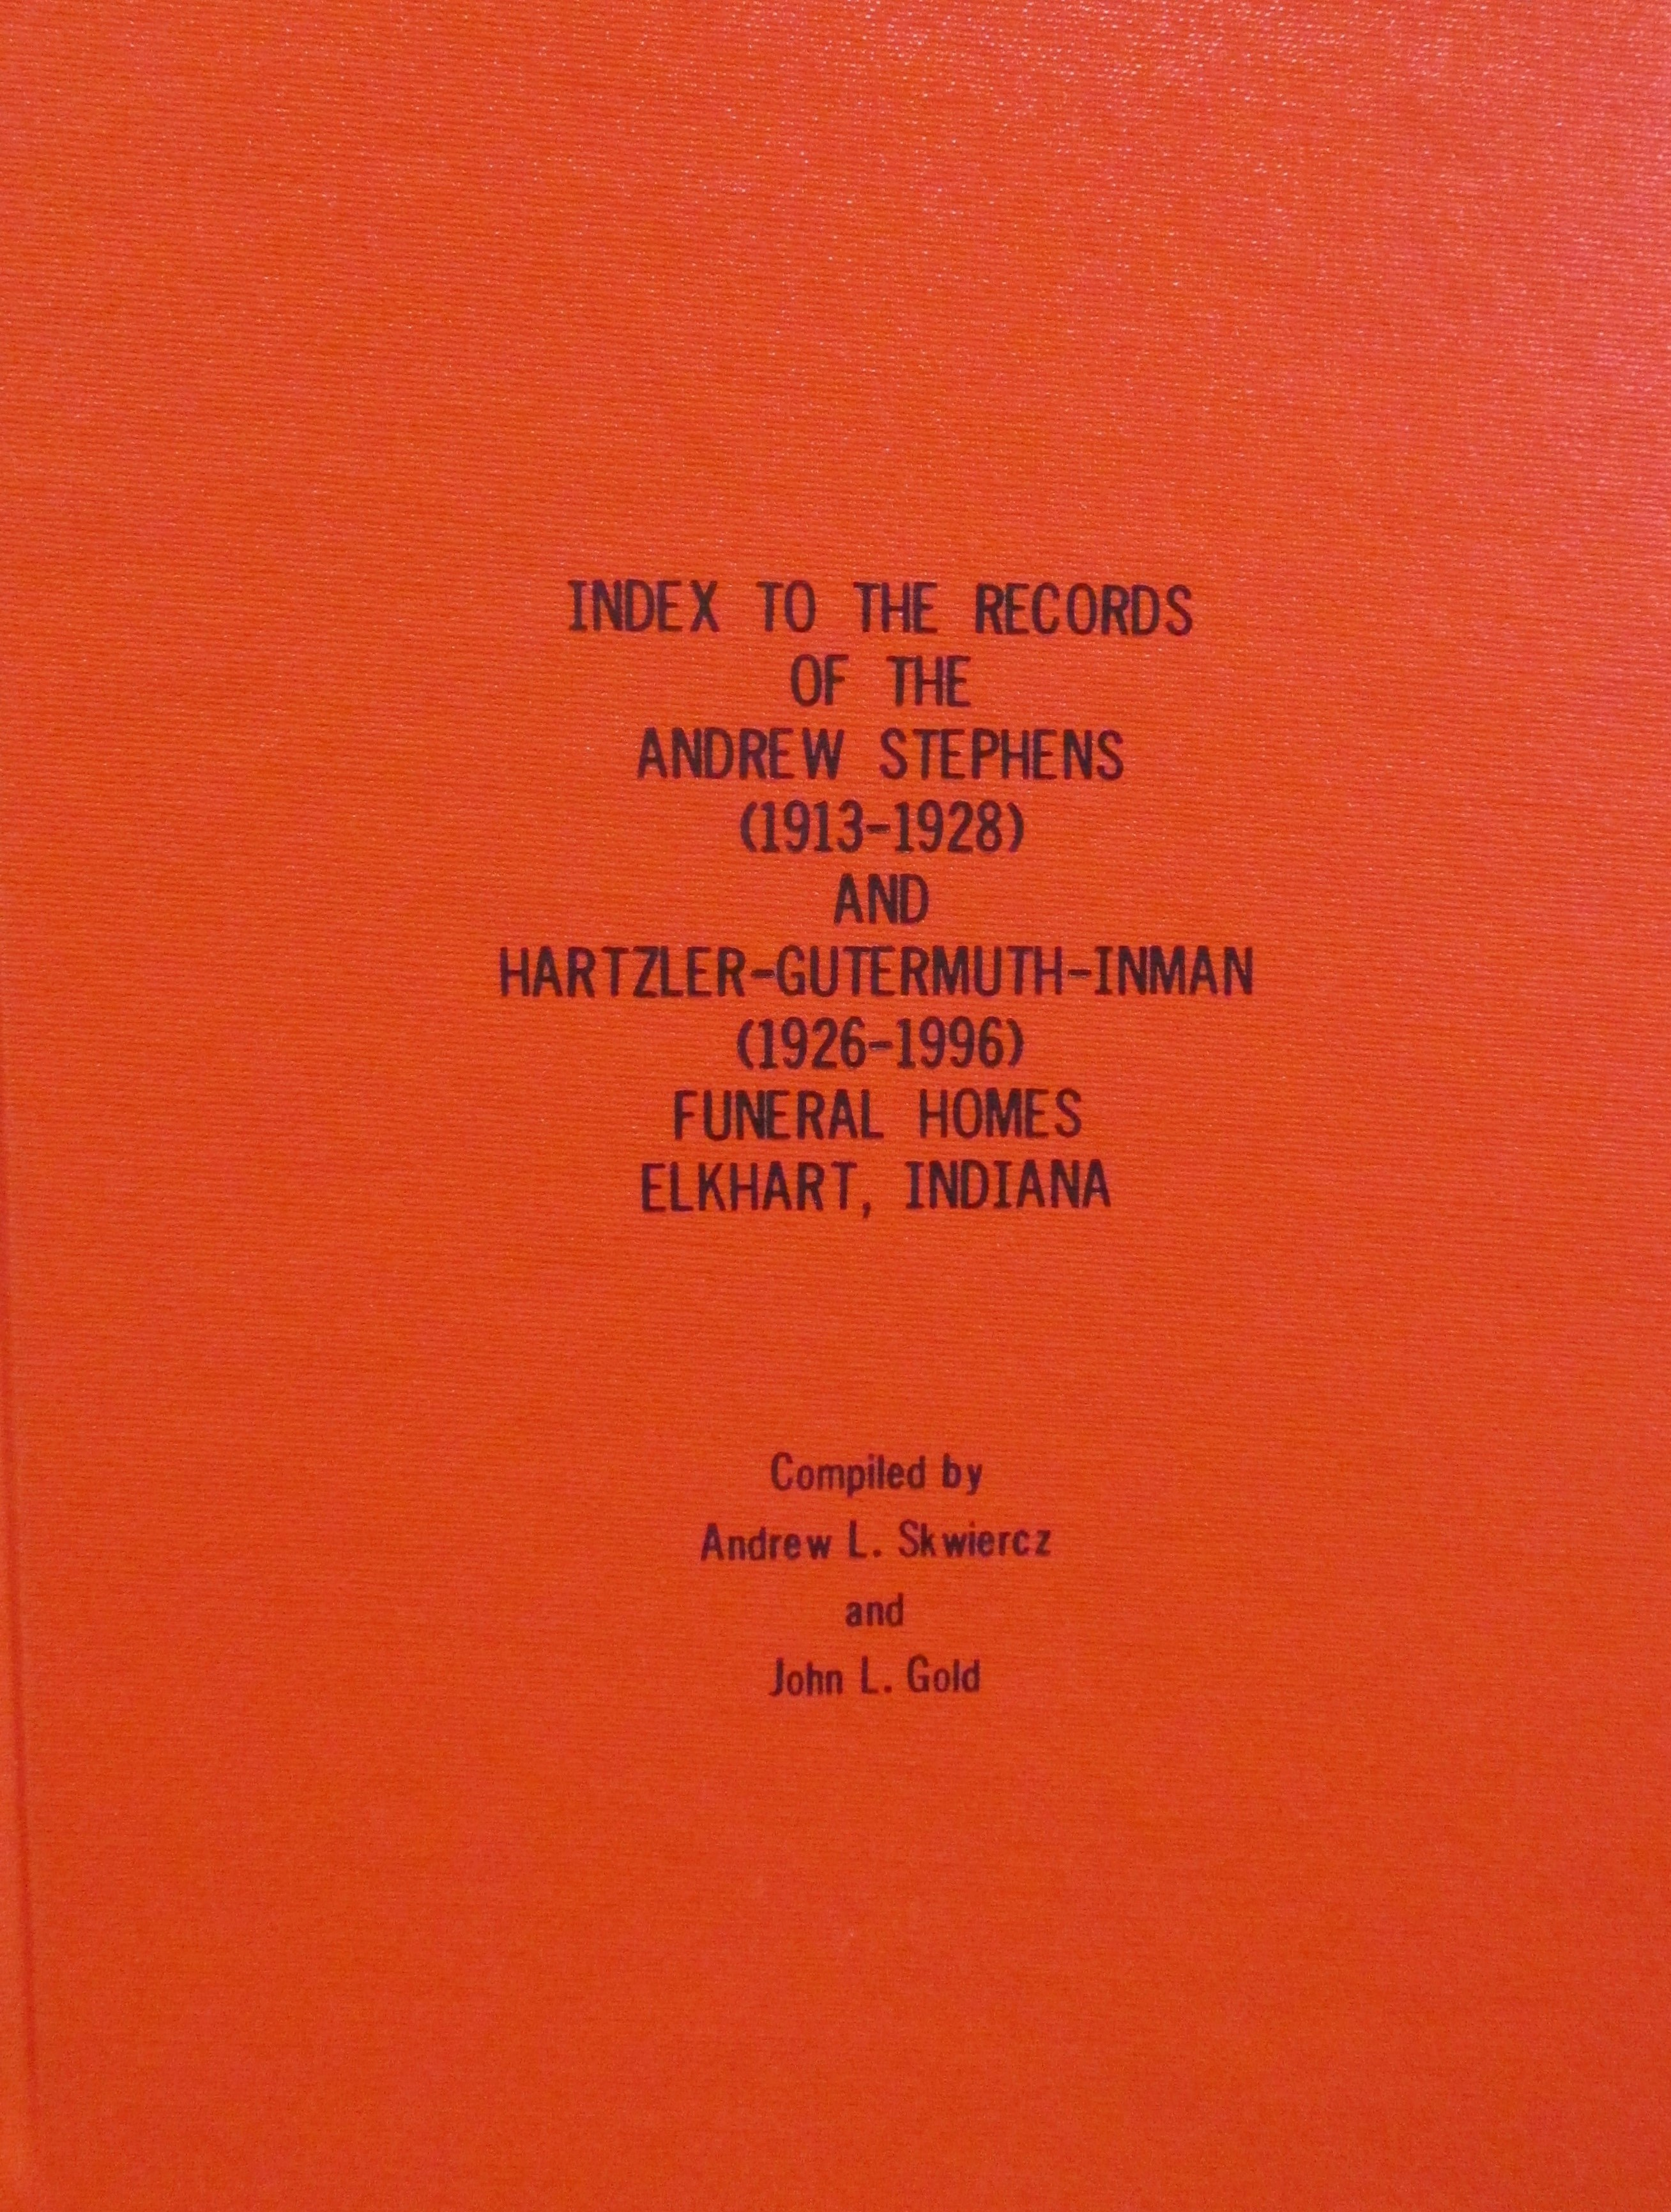 Index to the Records of the Andrew Stephens and Hartzler Gutermuth-Inman 1926-1996 Funeral Homes